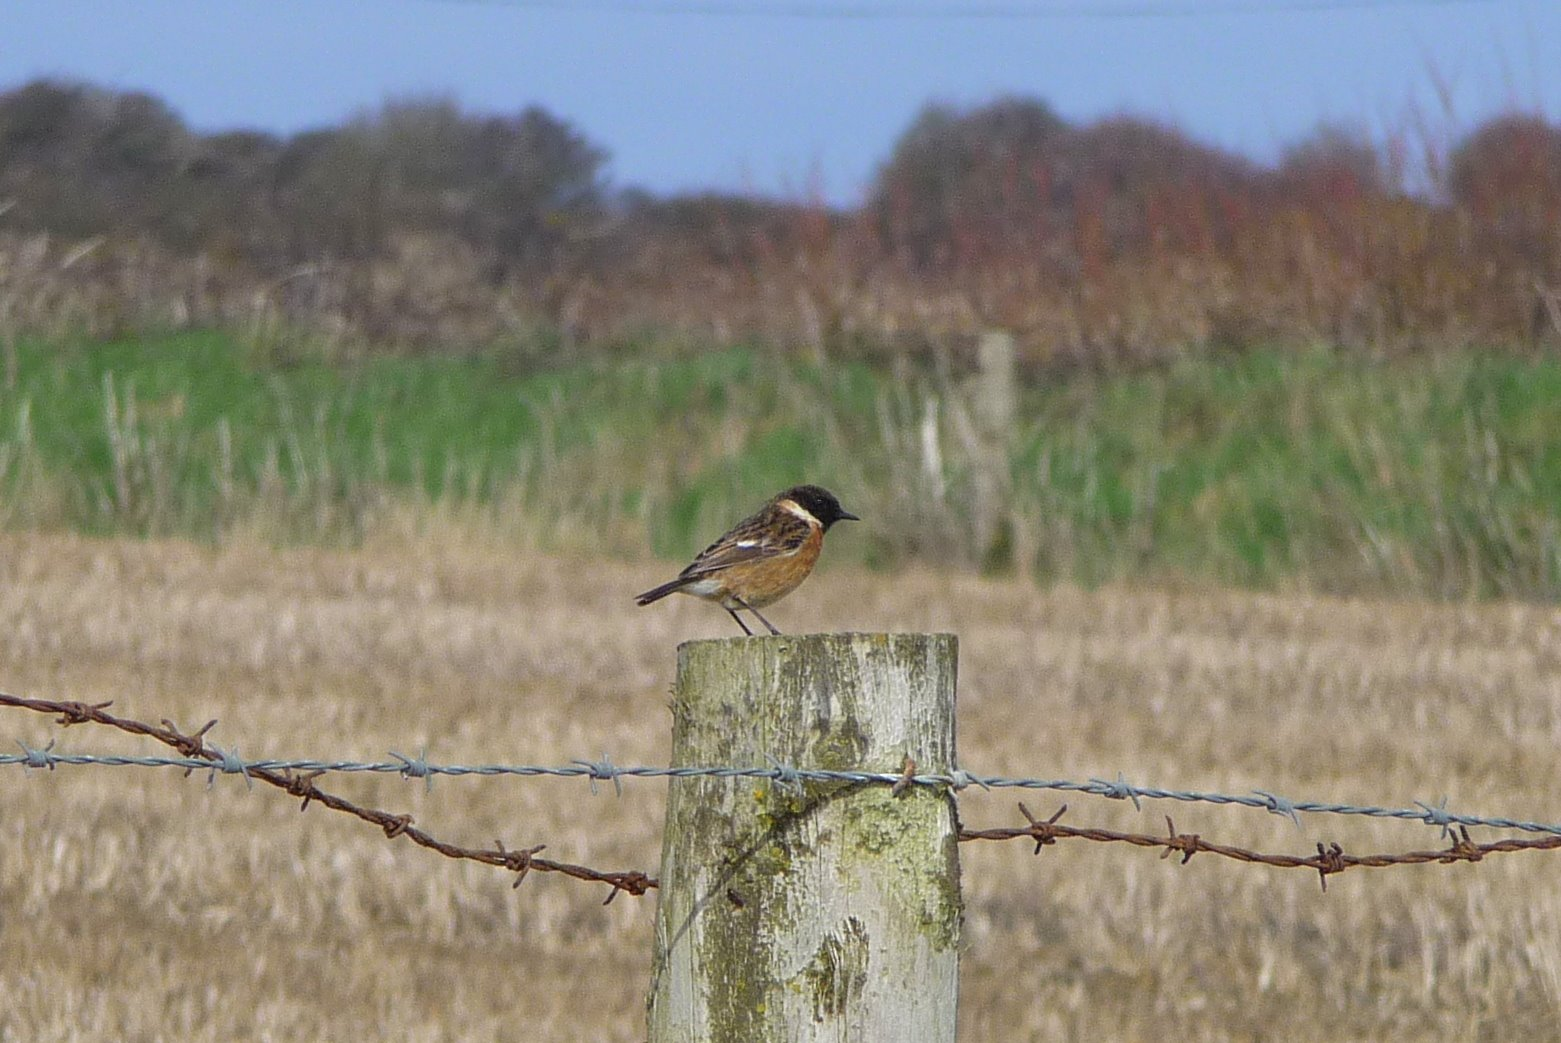 A small bird perched on a fence post